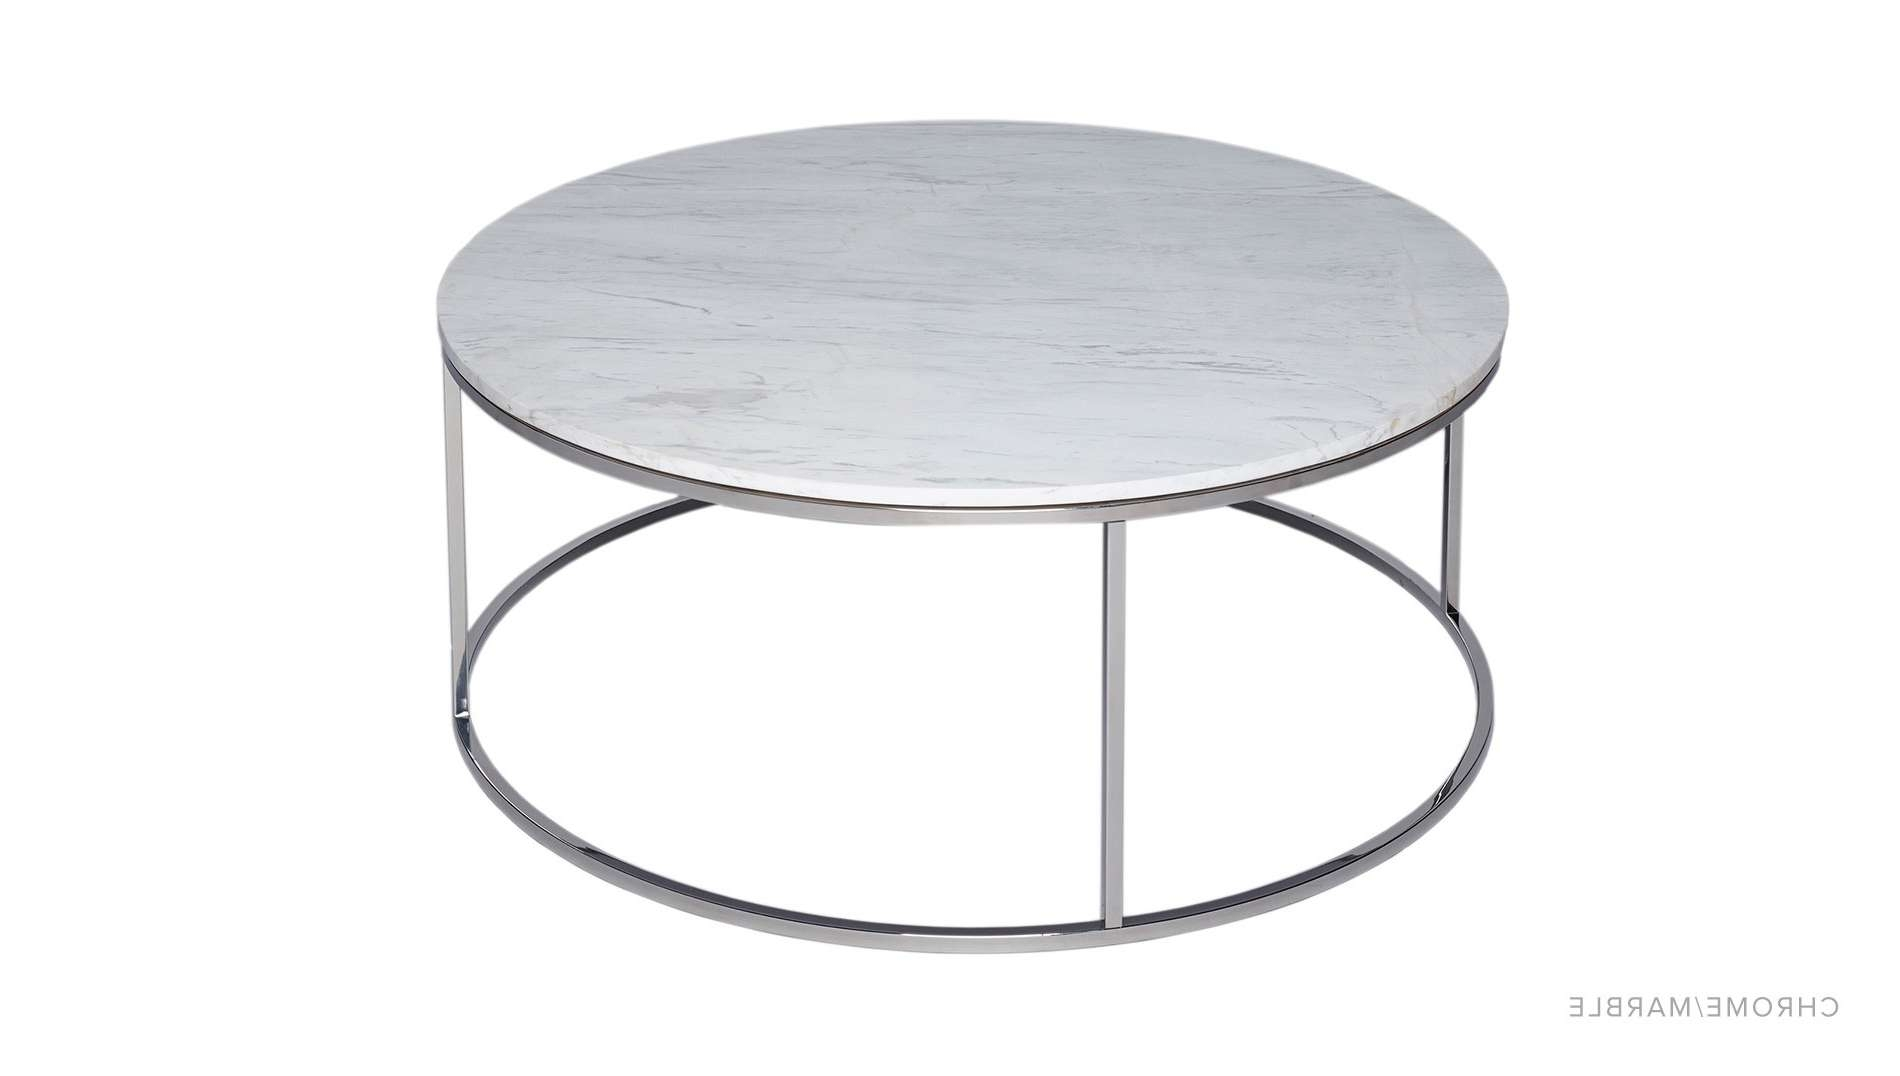 Most Recent Marble Round Coffee Tables Within Coffee Table : Amazing Modern Coffee Table Round Marble Top Coffee (View 14 of 20)